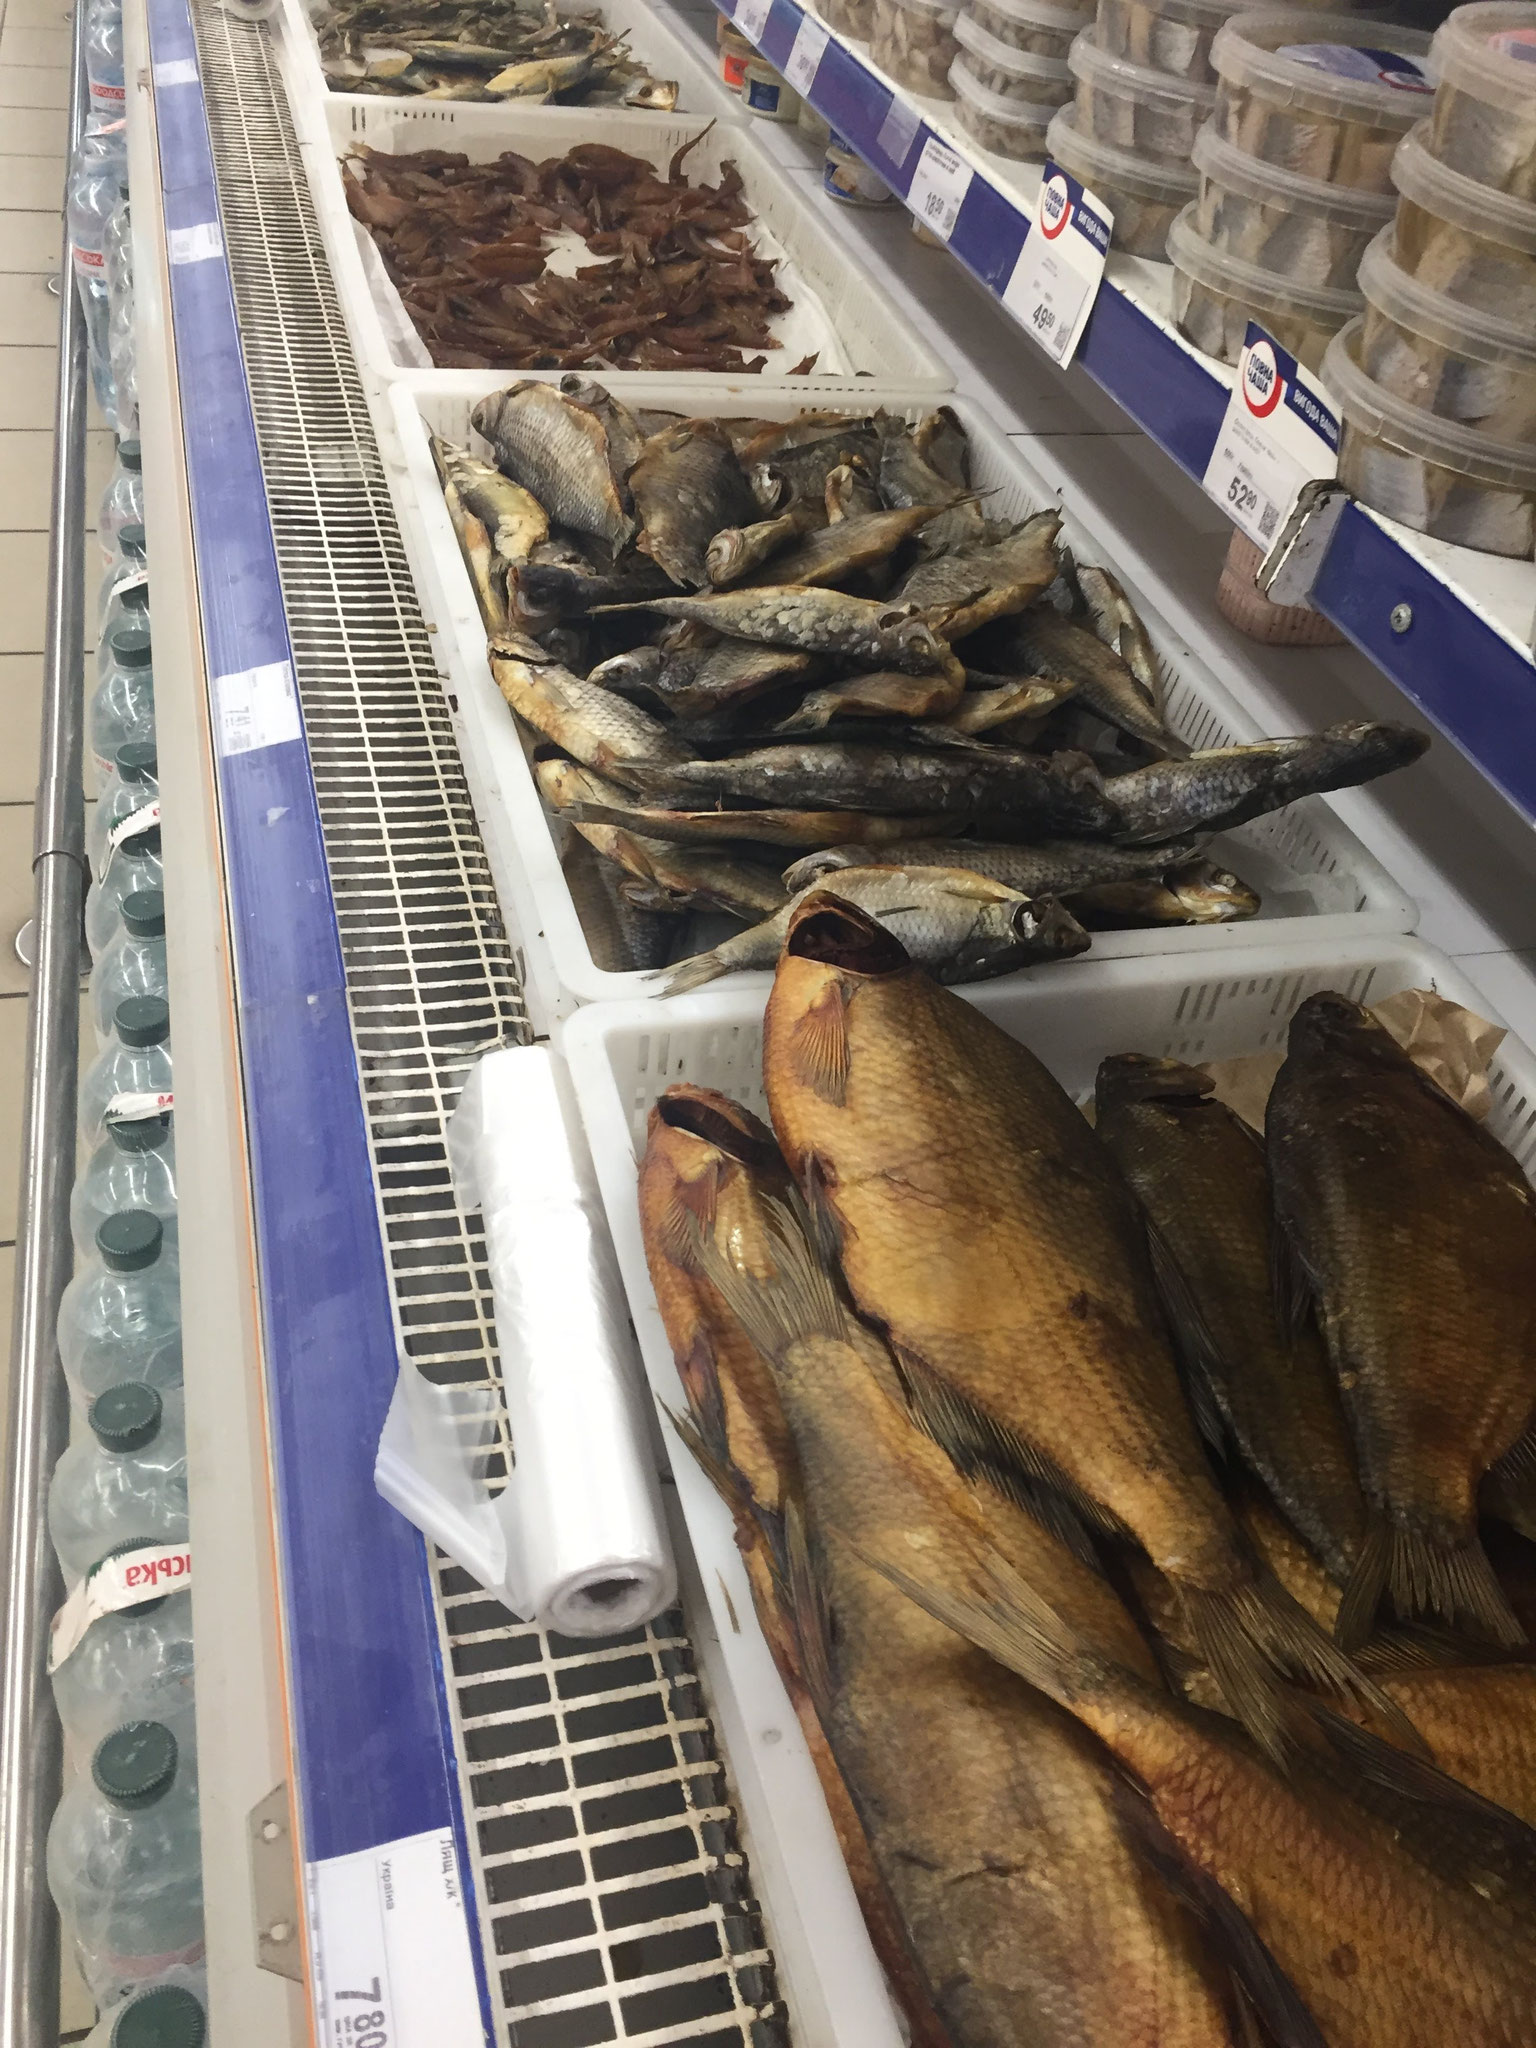 Dried fish is very popular here. I am not really interested in trying...